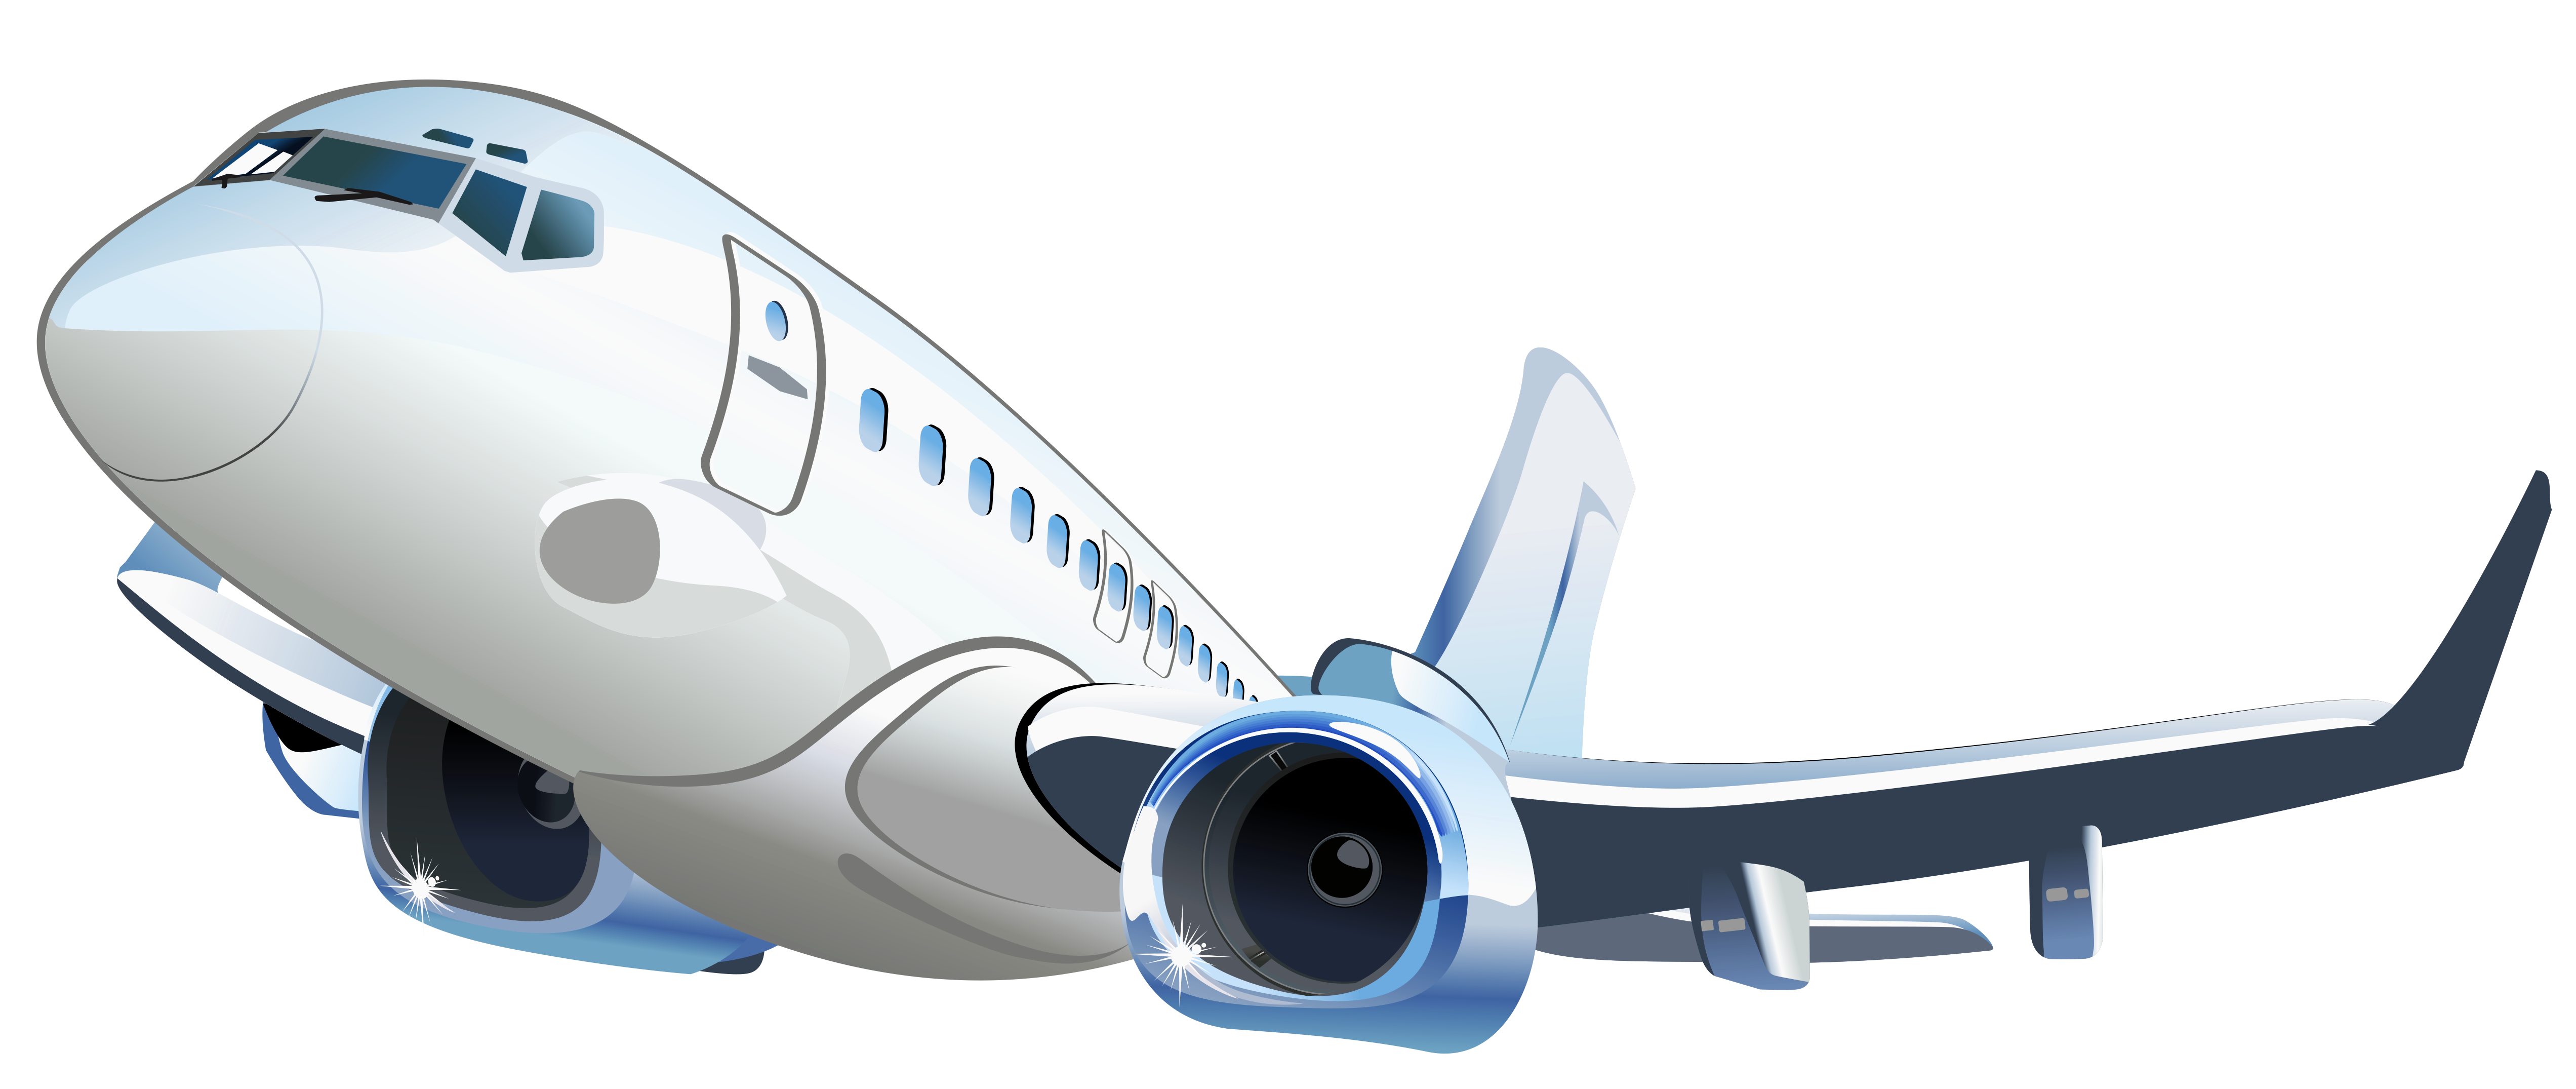 Airplane Transparent Vector Clipart Gallery Yopriceville High Quality Images And Transparent Png Free Clipart Clip Art Cartoon Airplane Clipart Gallery